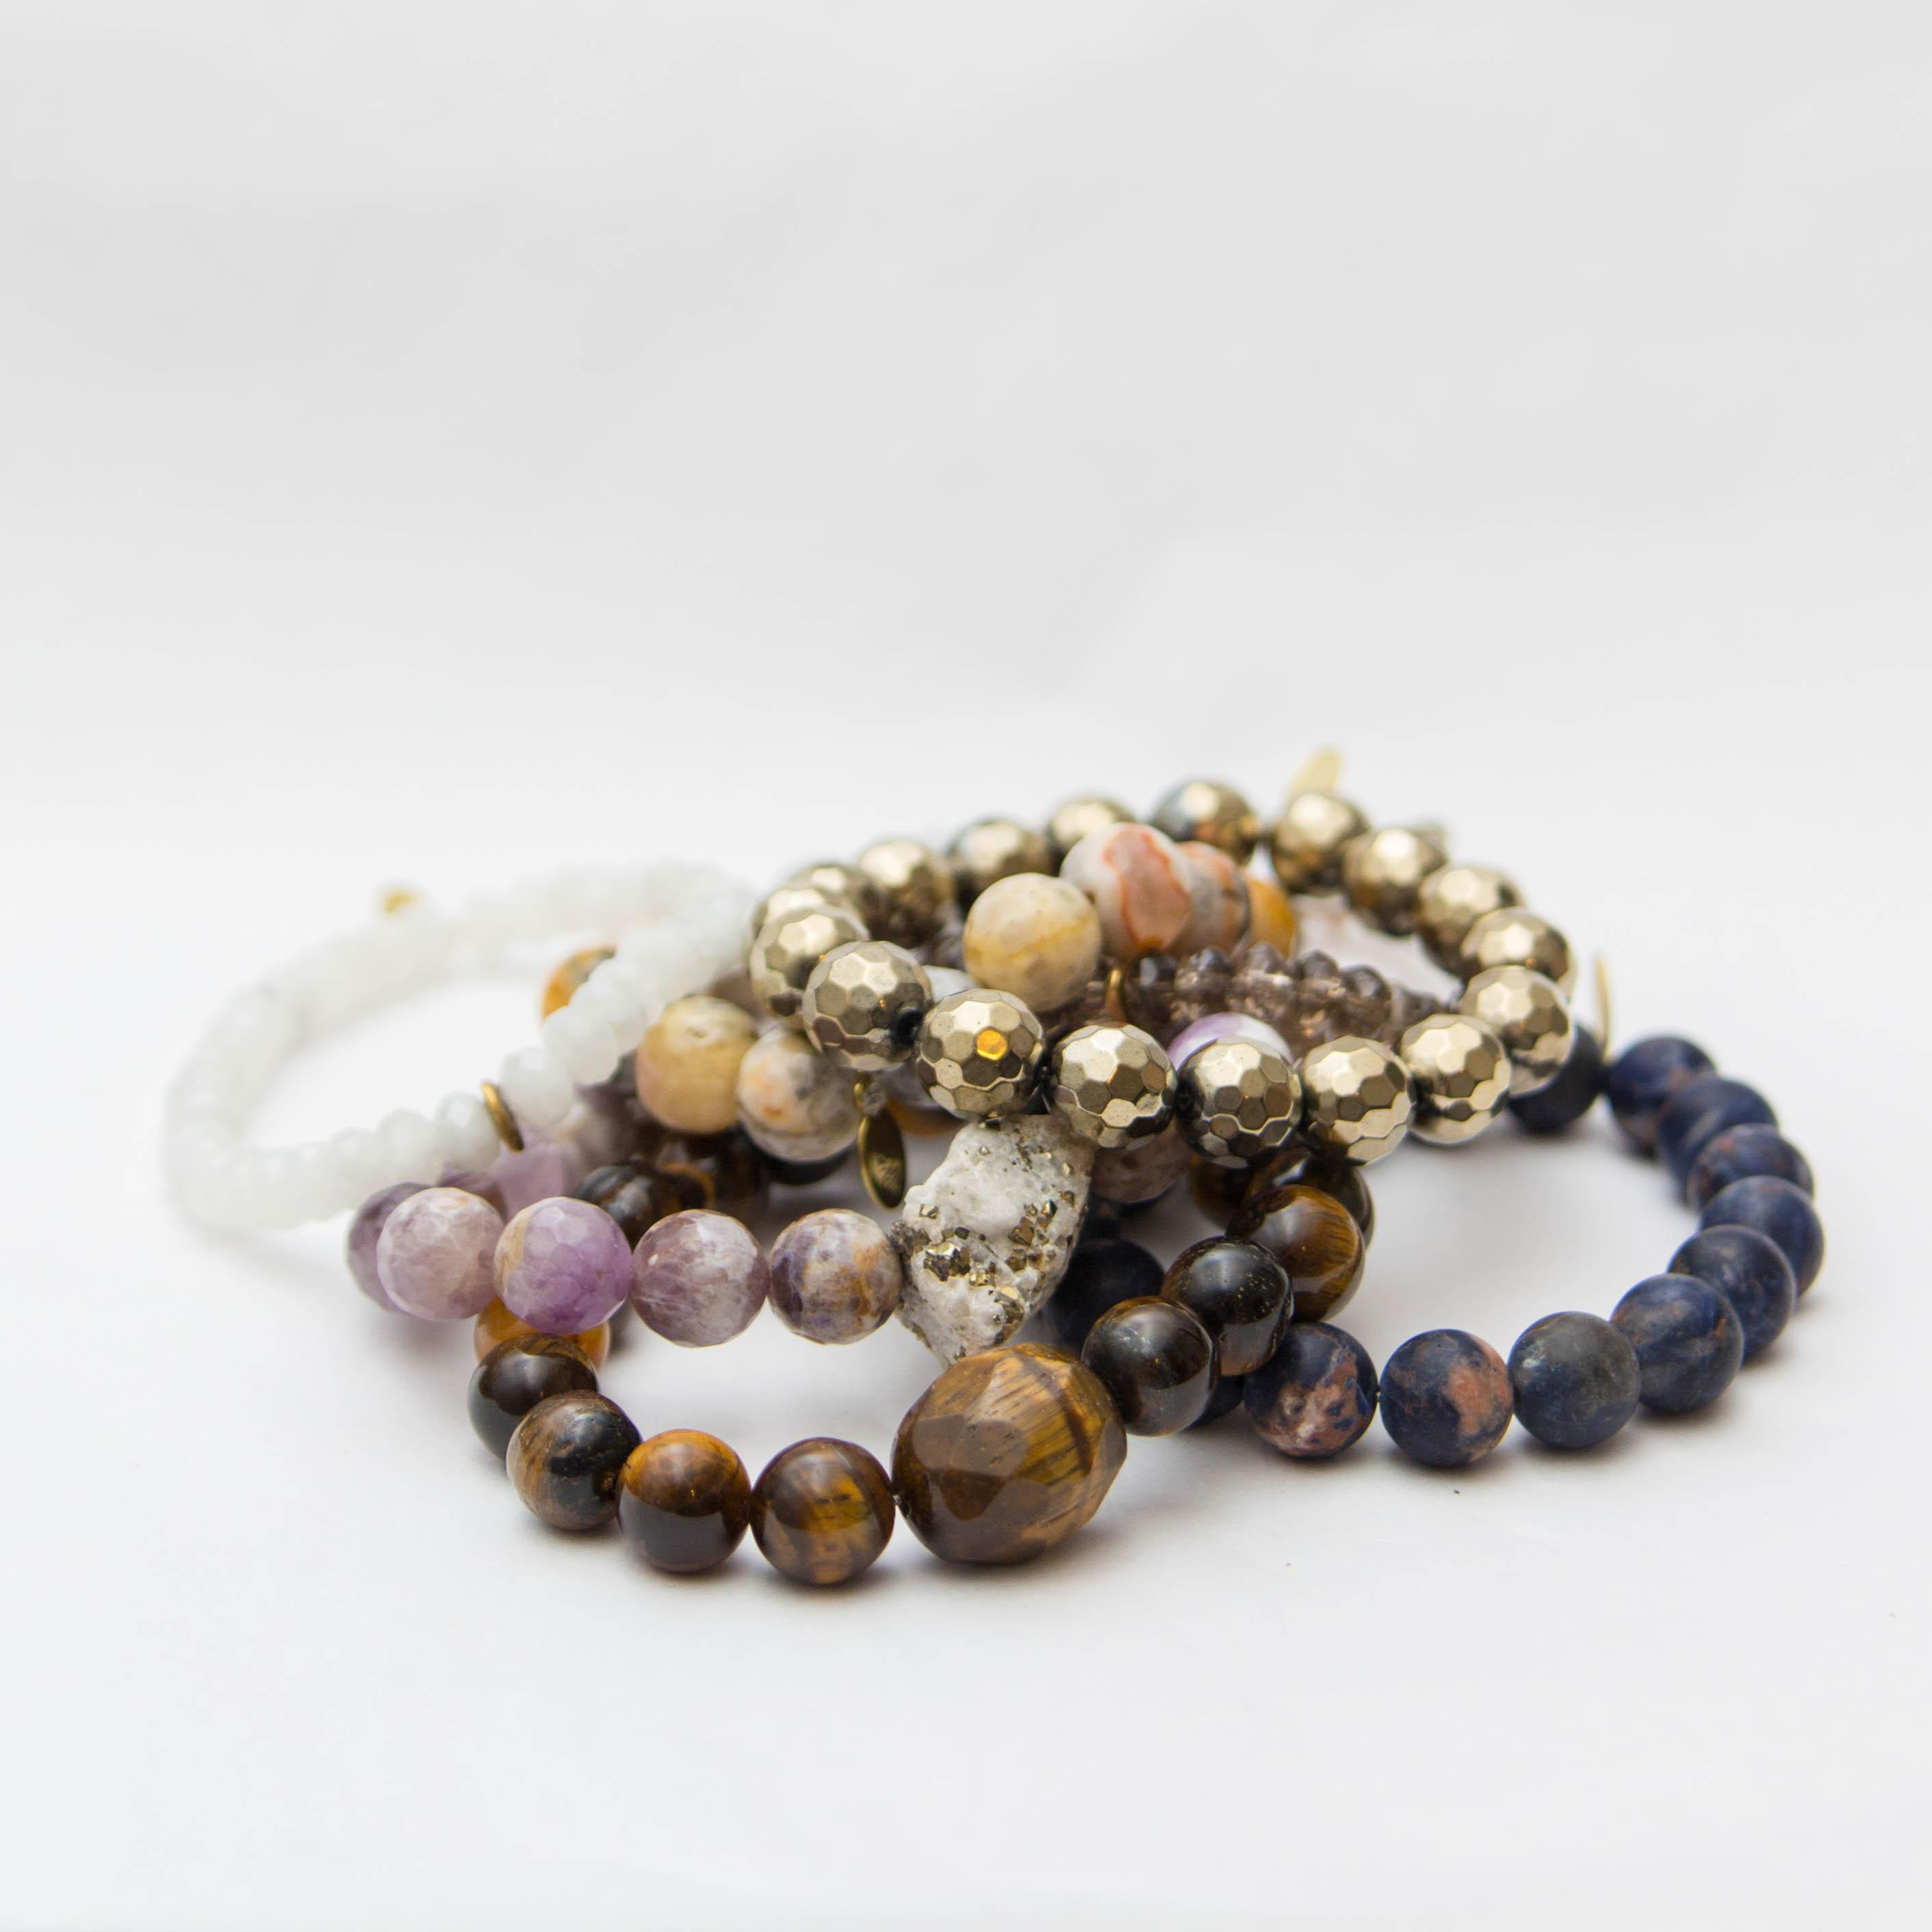 Infinite Warrior Holiday Trunk Show